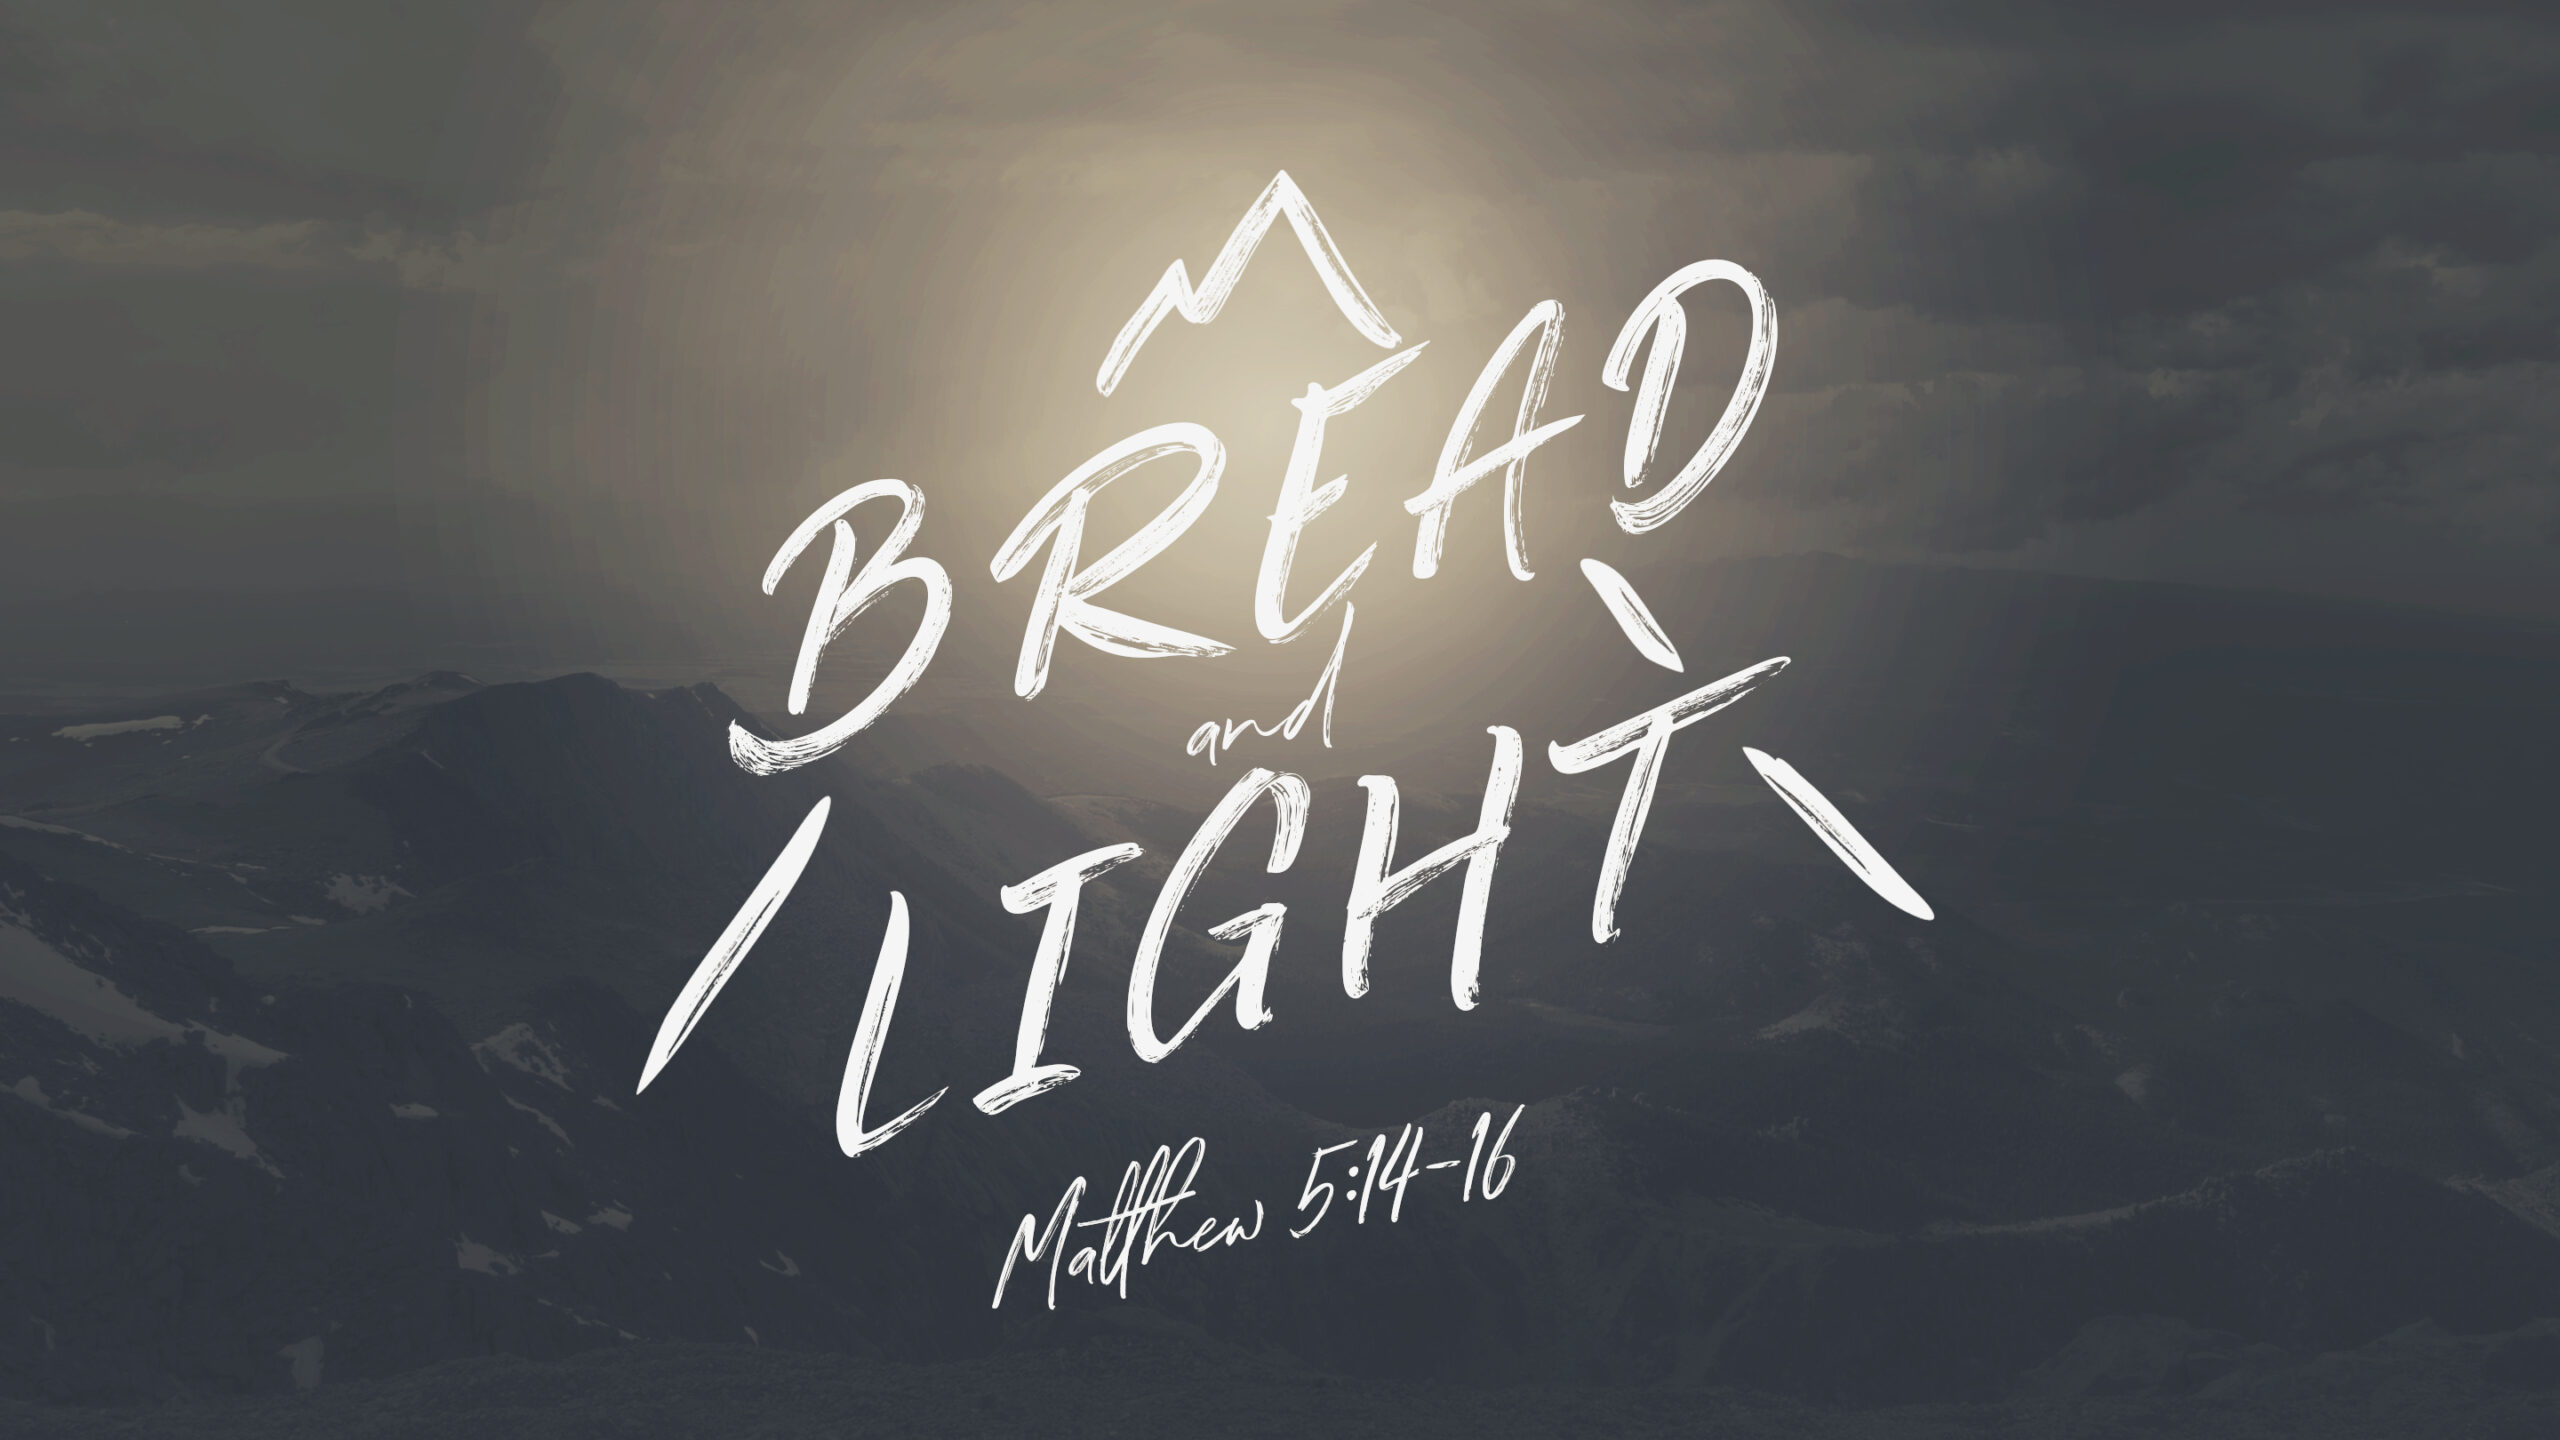 Bread and Light